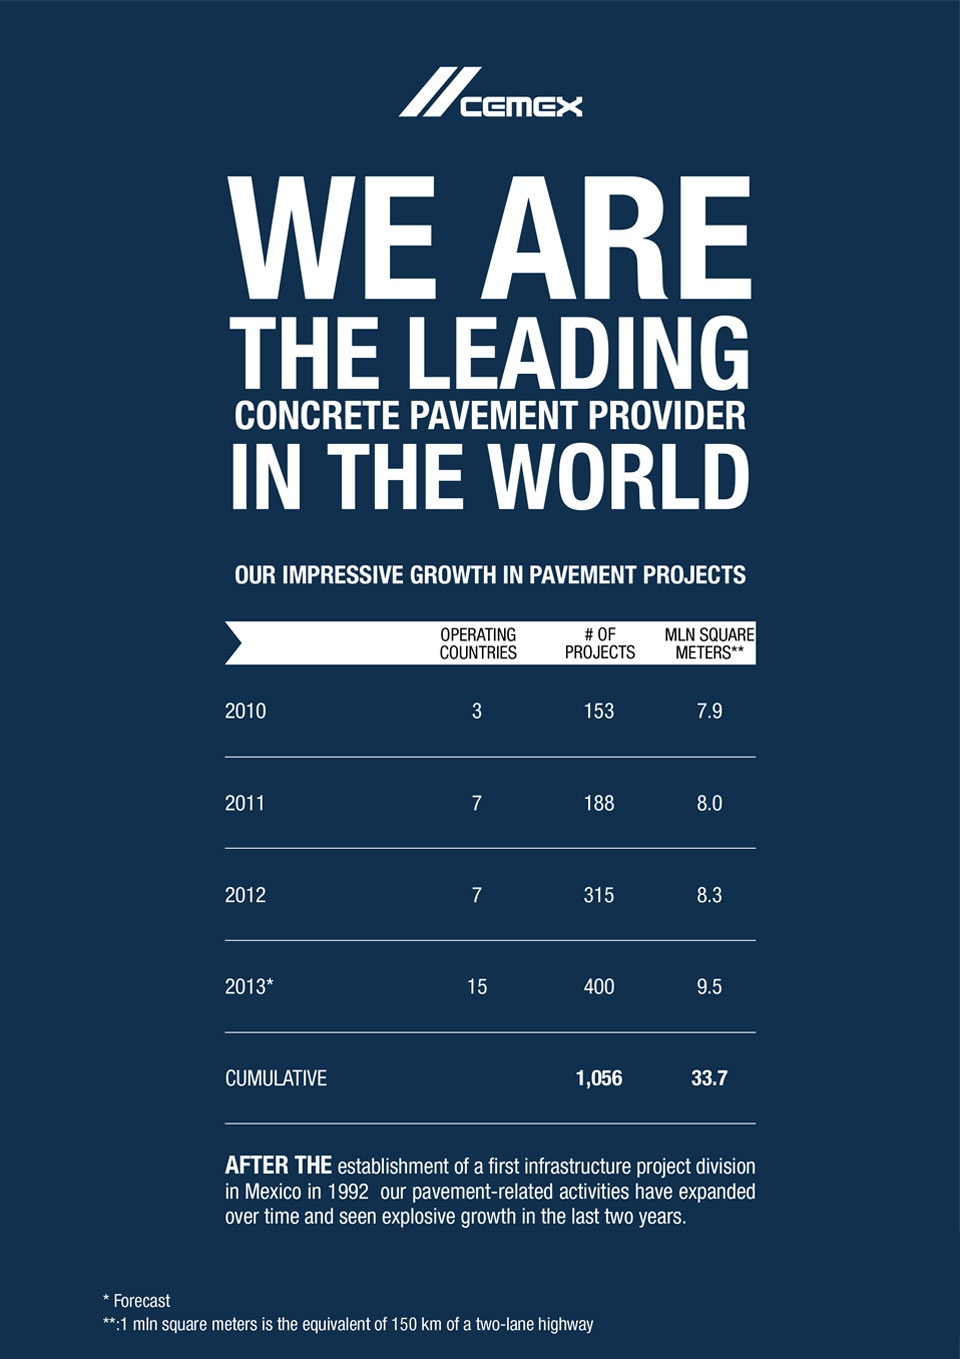 the image shows CEMEX's statistics about their growth in pavement projects in recent years